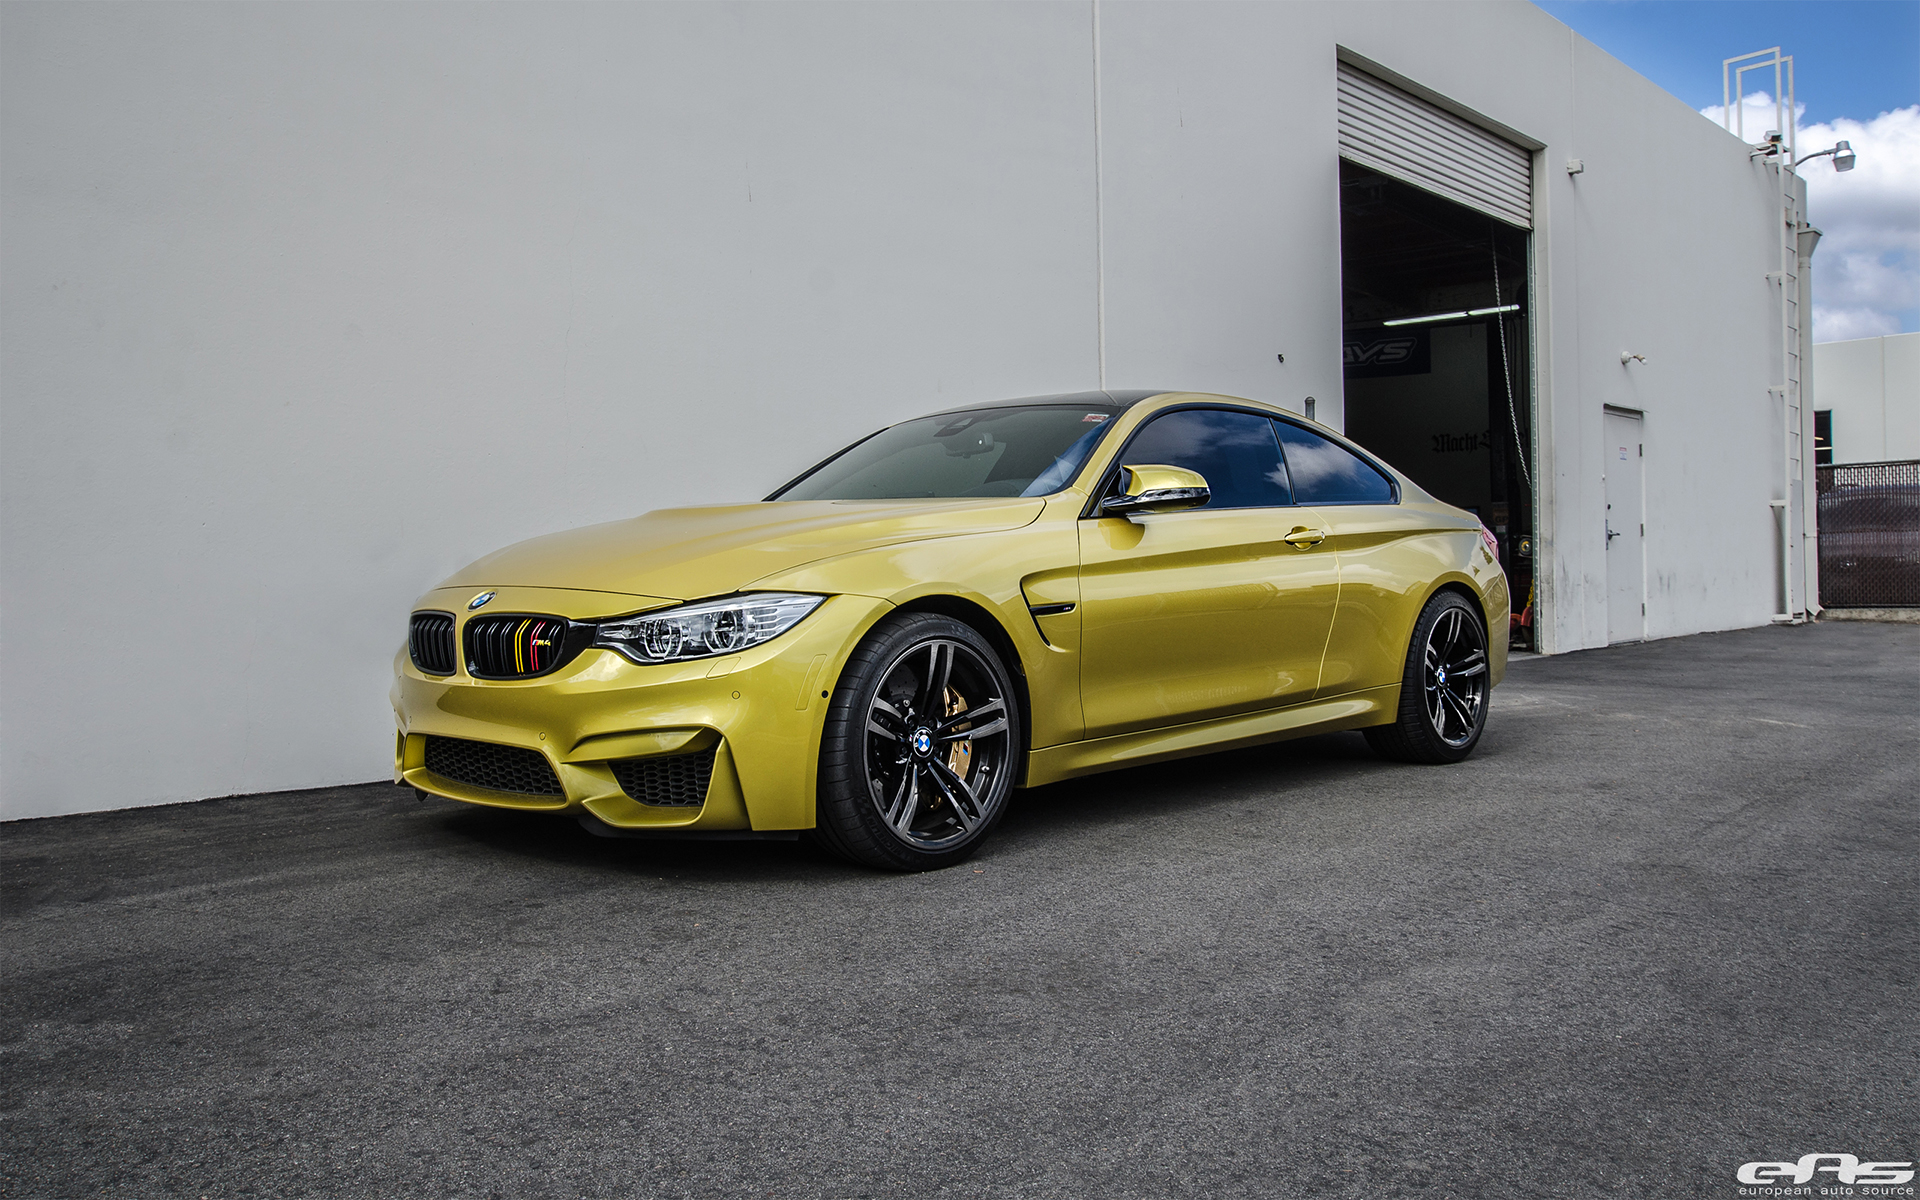 Austin Yellow Bmw M4 Coupe Gets An Aftermarket Treatment